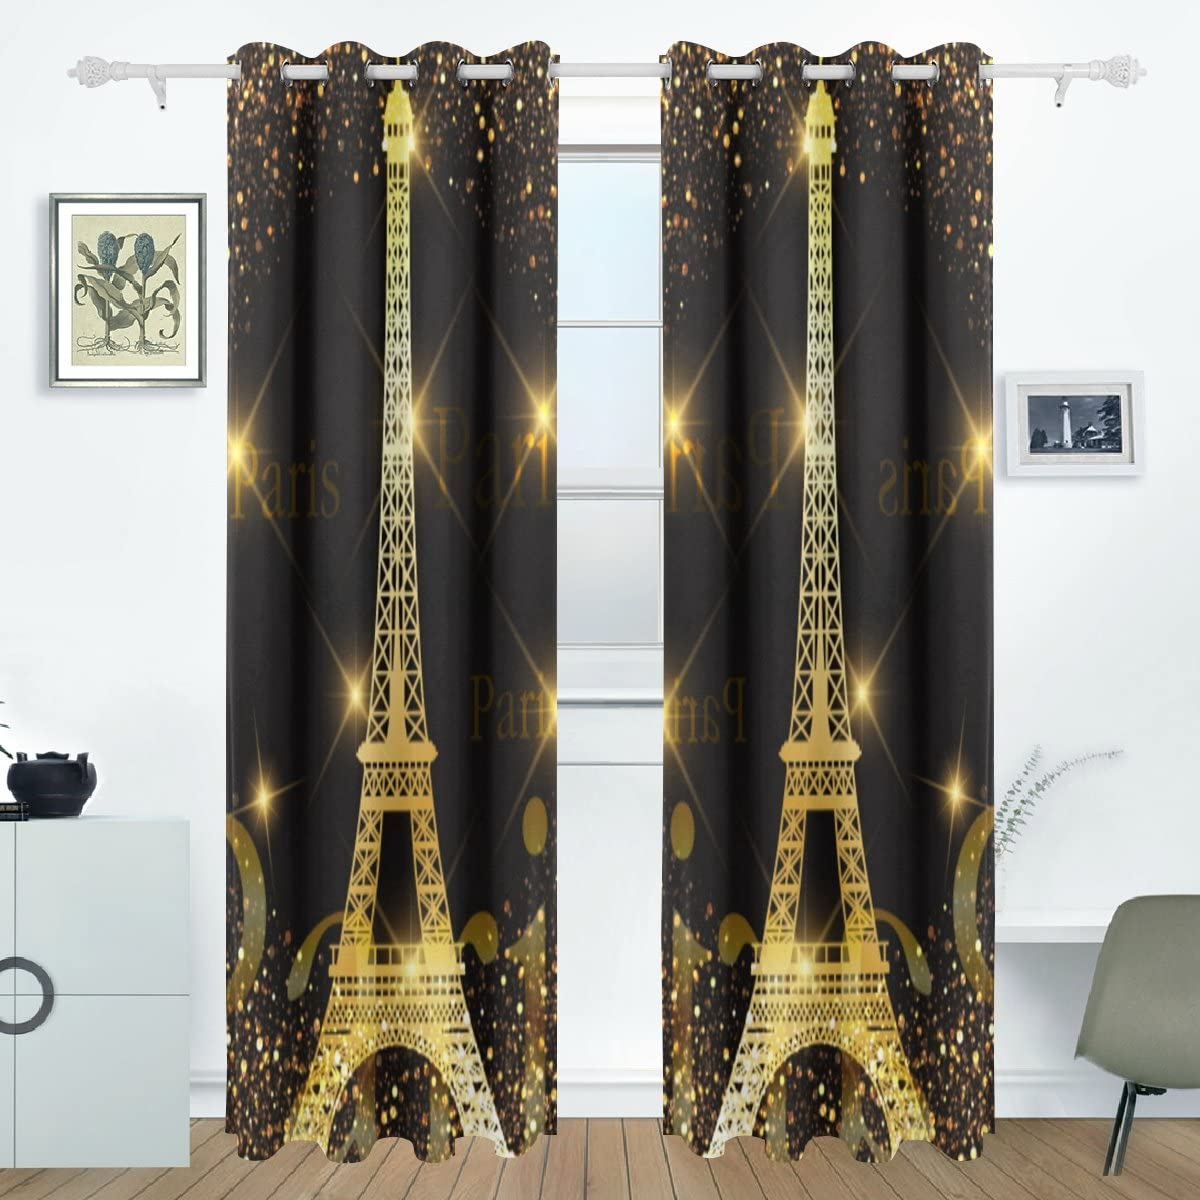 ALAZA Paris Gold Eiffel Tower Window Curtains Blackout Curtains with Grommet for Bedroom Living Room Single-Sided Printing 84×55 Inch Two Panels